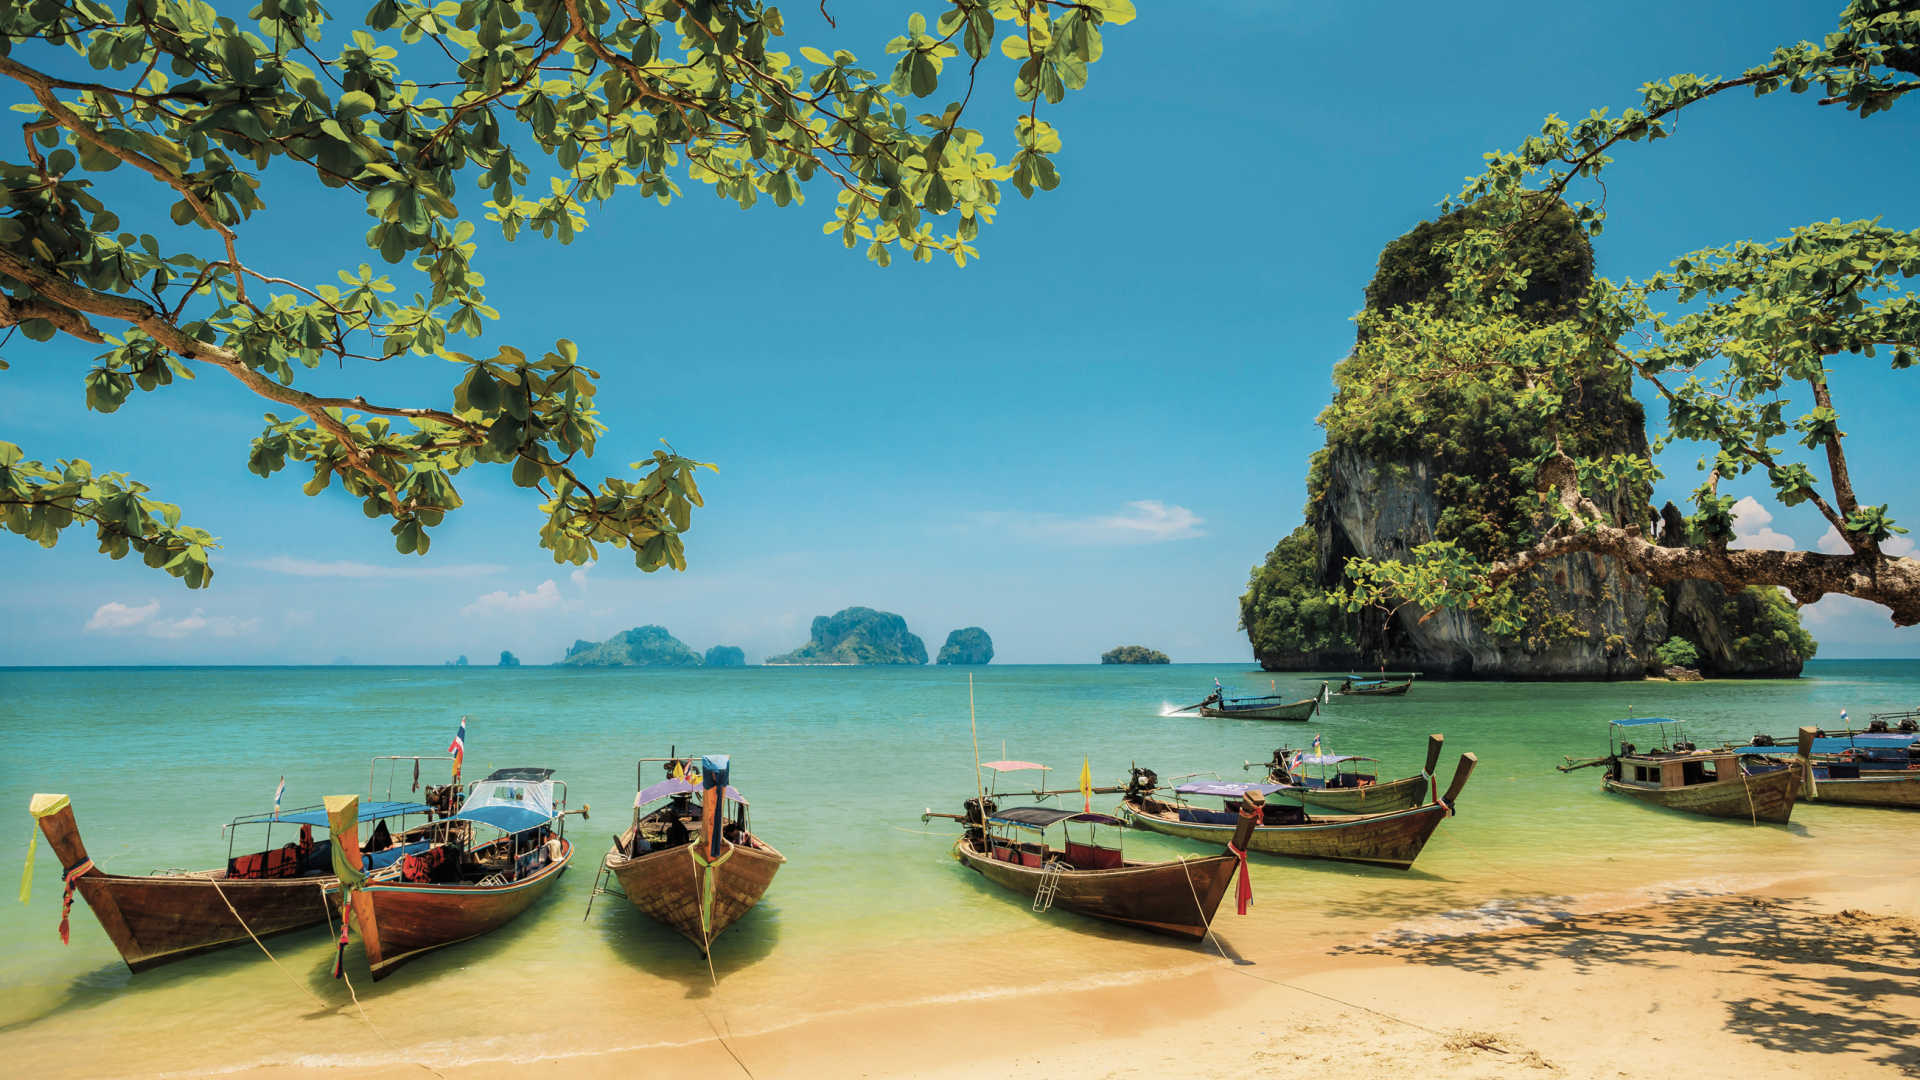 Nights Days Nights Thailand Tour Package Travelsetucom - Thailand tour package